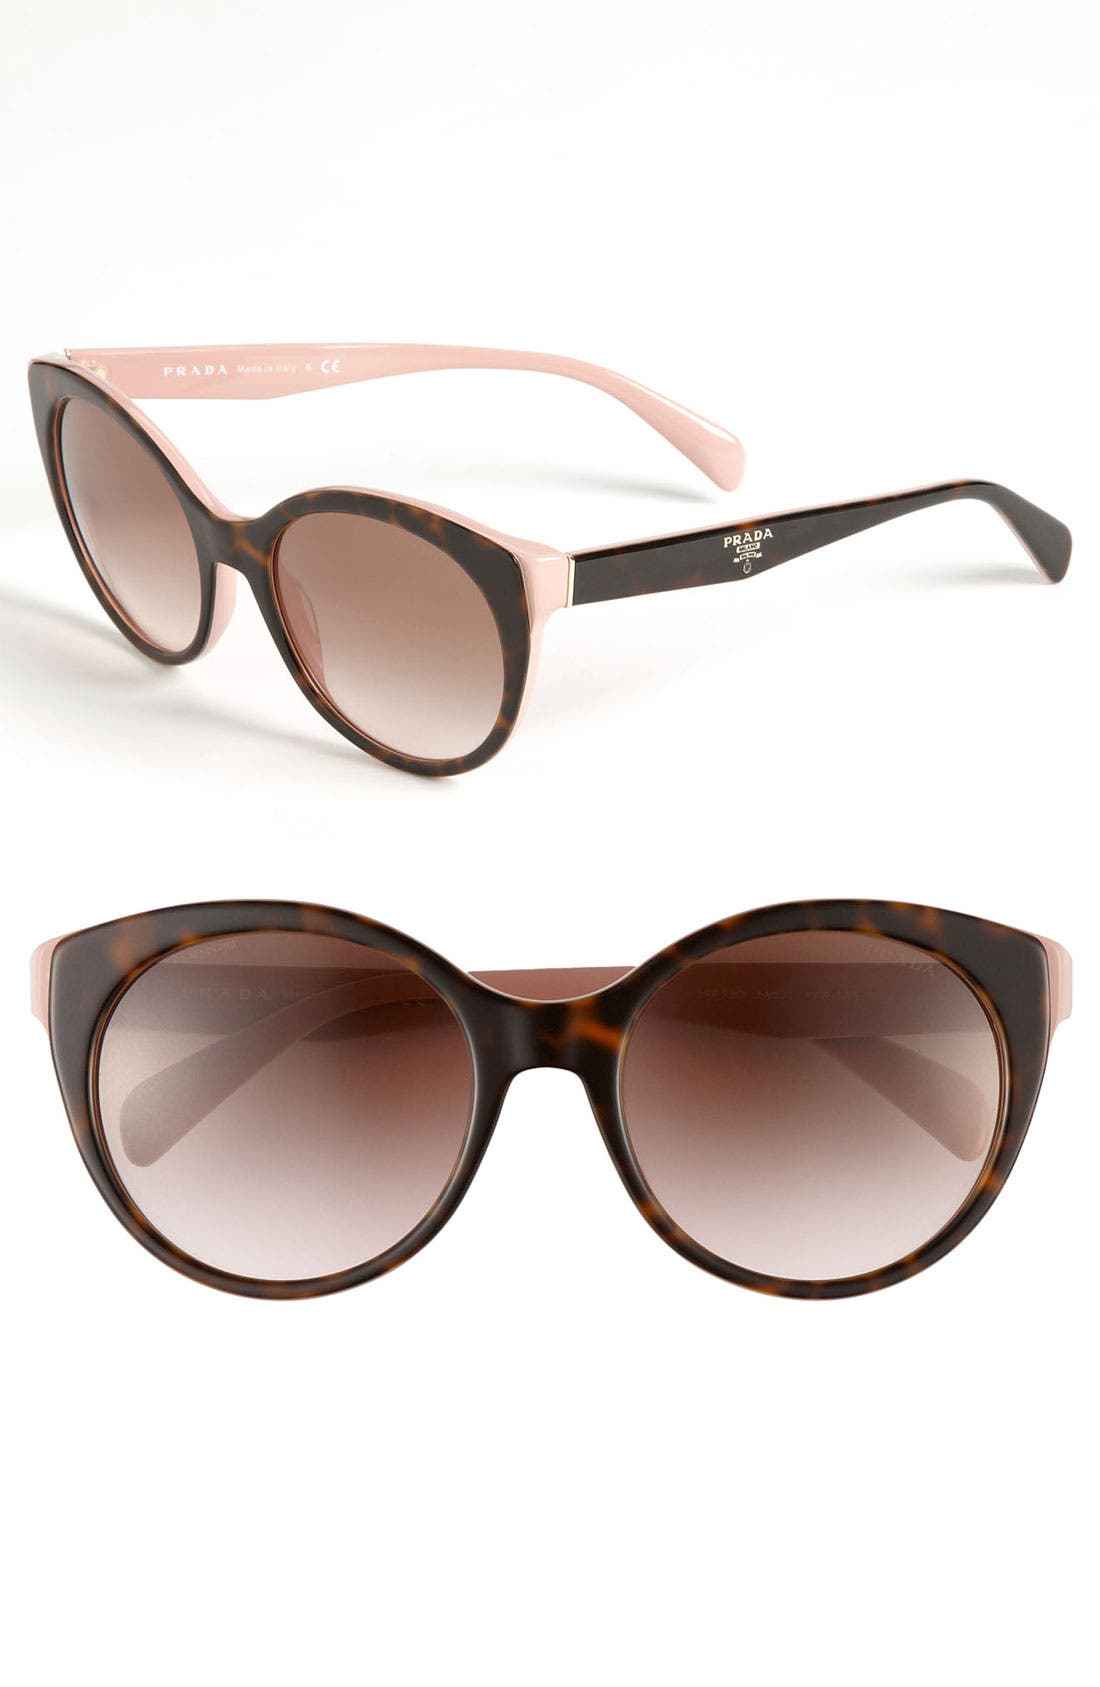 Main Image - Prada 56mm Cat Eye Sunglasses